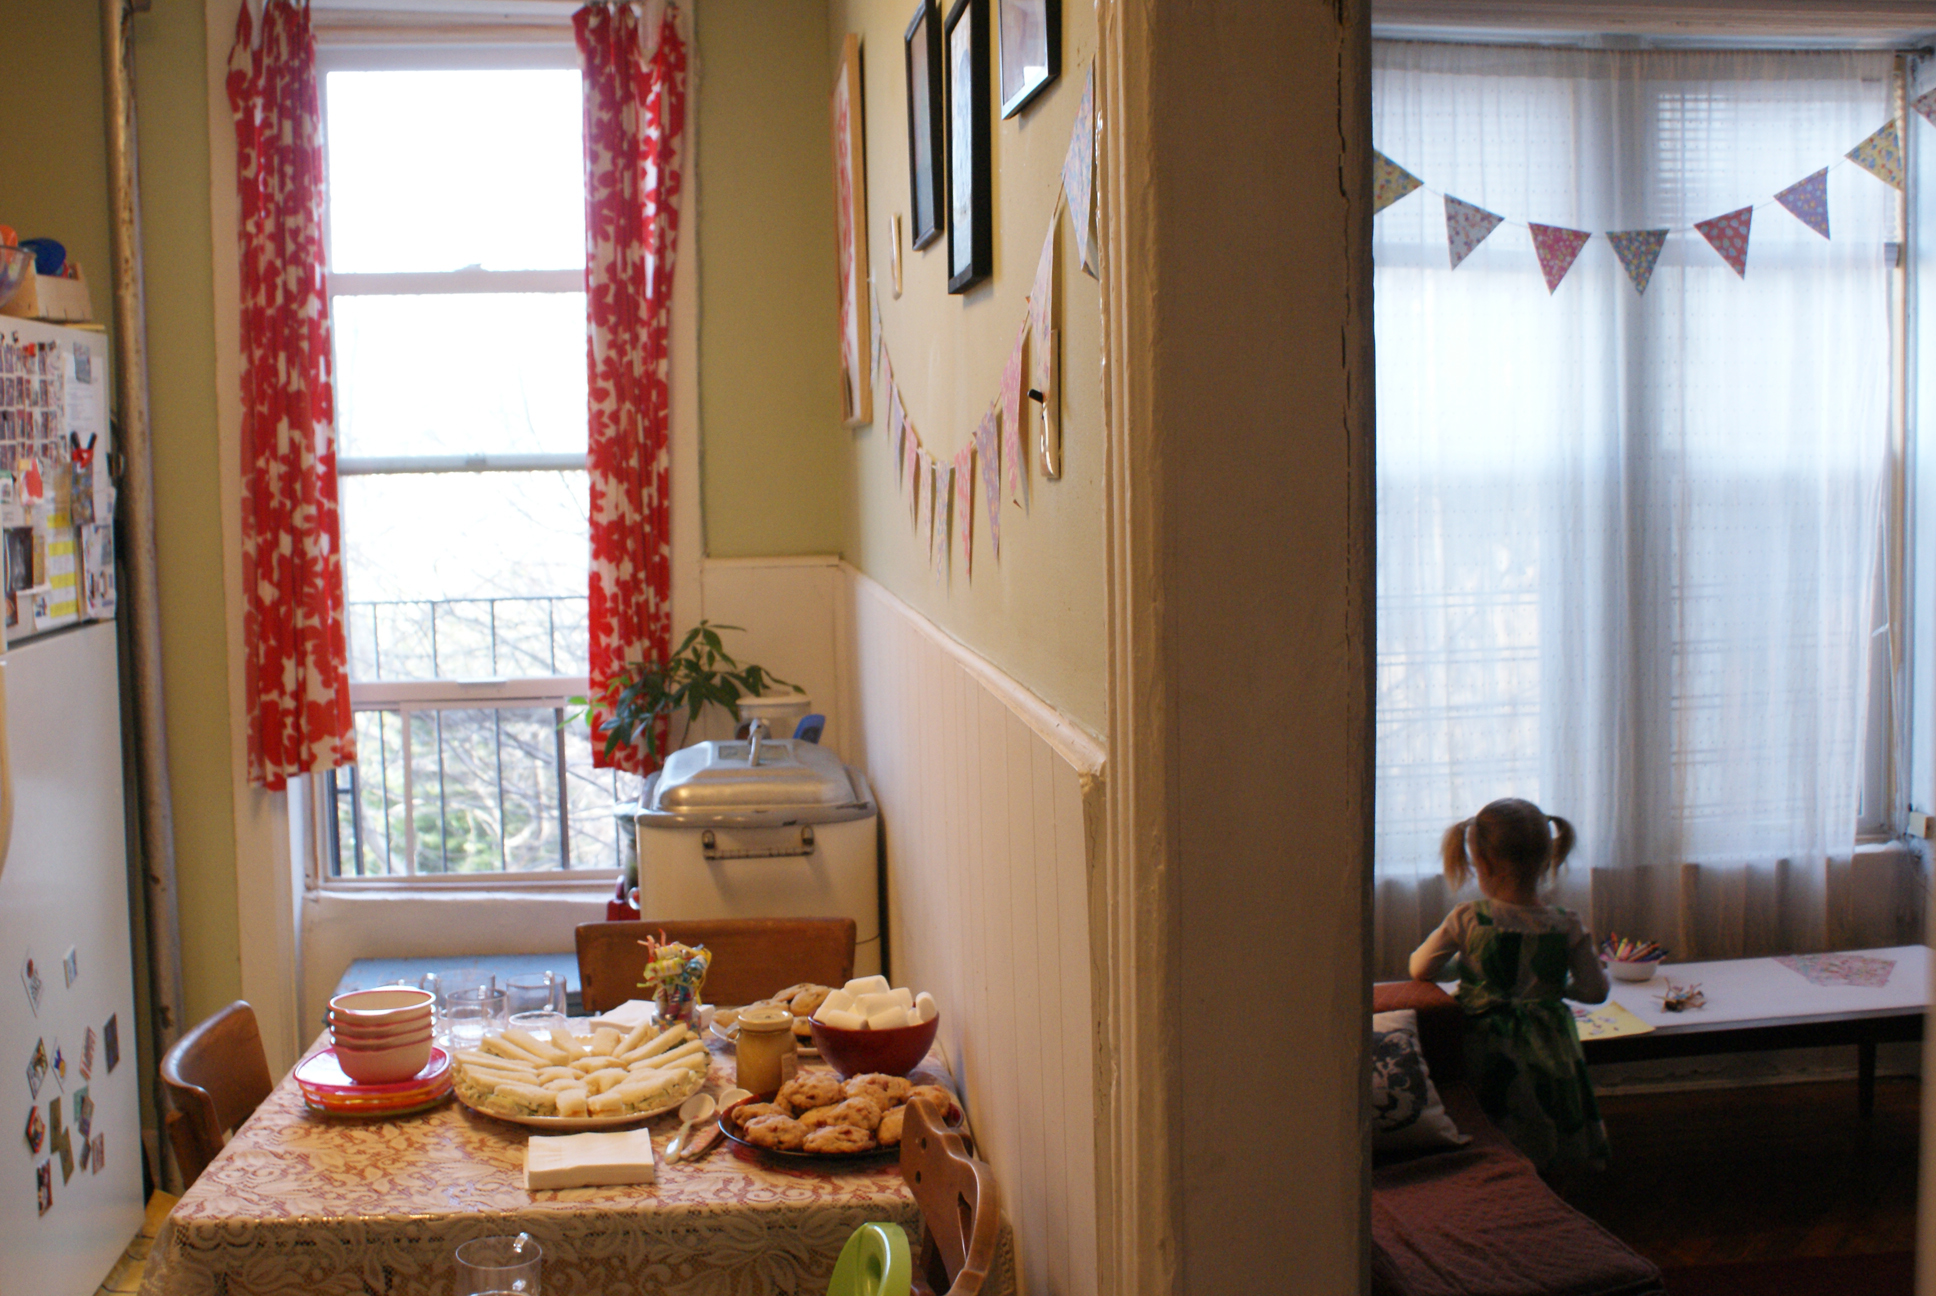 How to host a great kids 39 party in a small apartment for Great ideas for small apartments